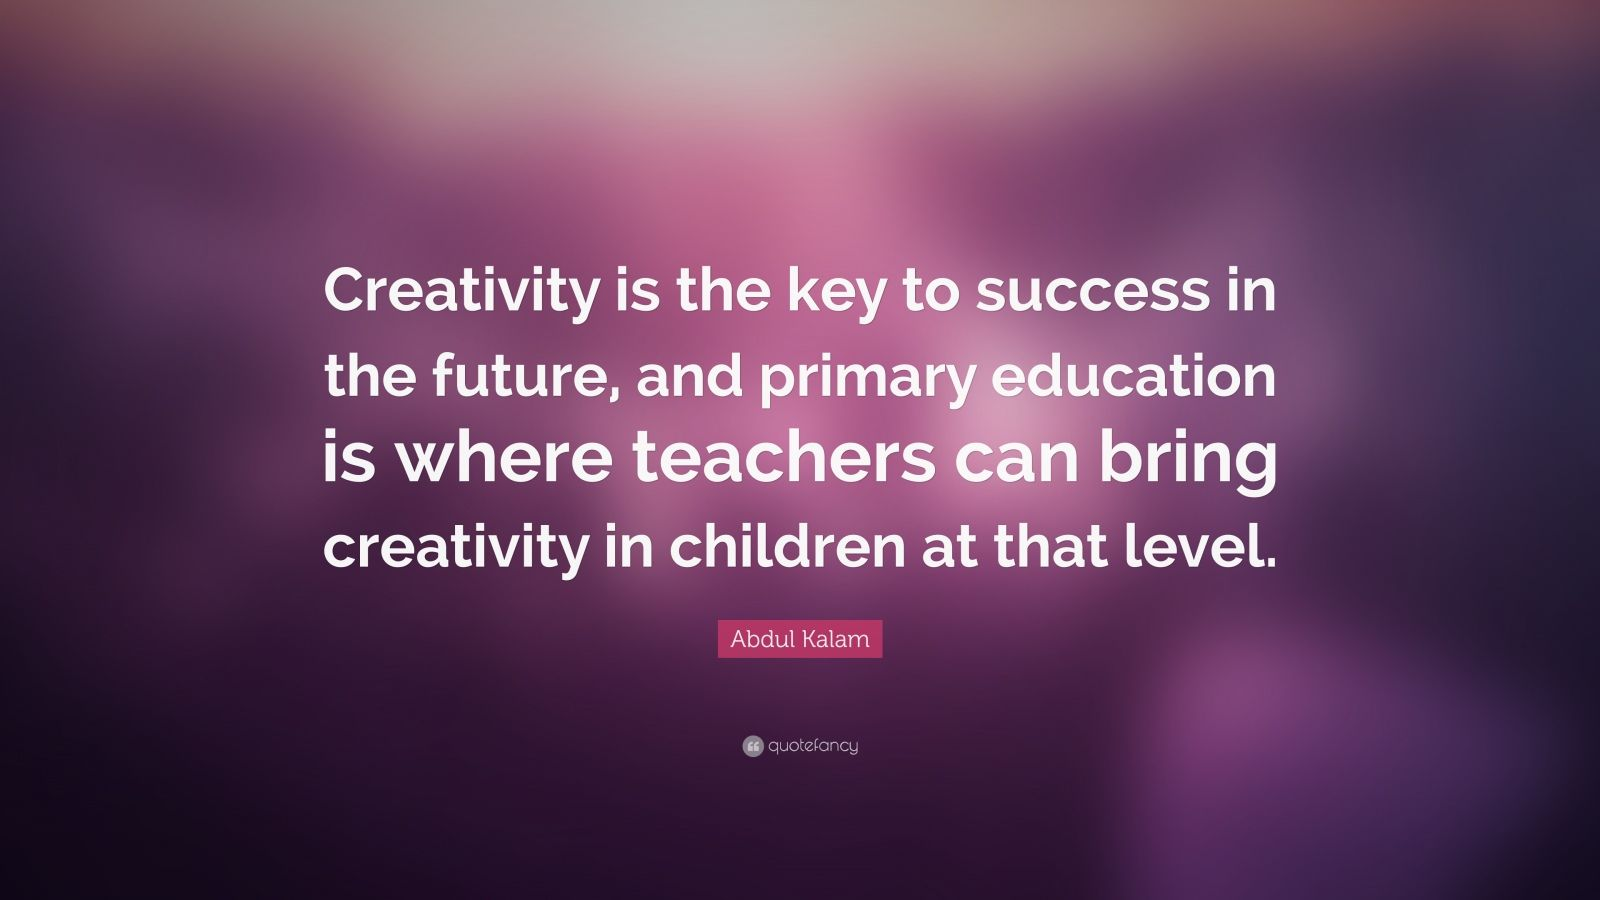 """Abdul Kalam Quote: """"Creativity is the key to success in the future, and primary education is where teachers can bring creativity in children at that level."""""""